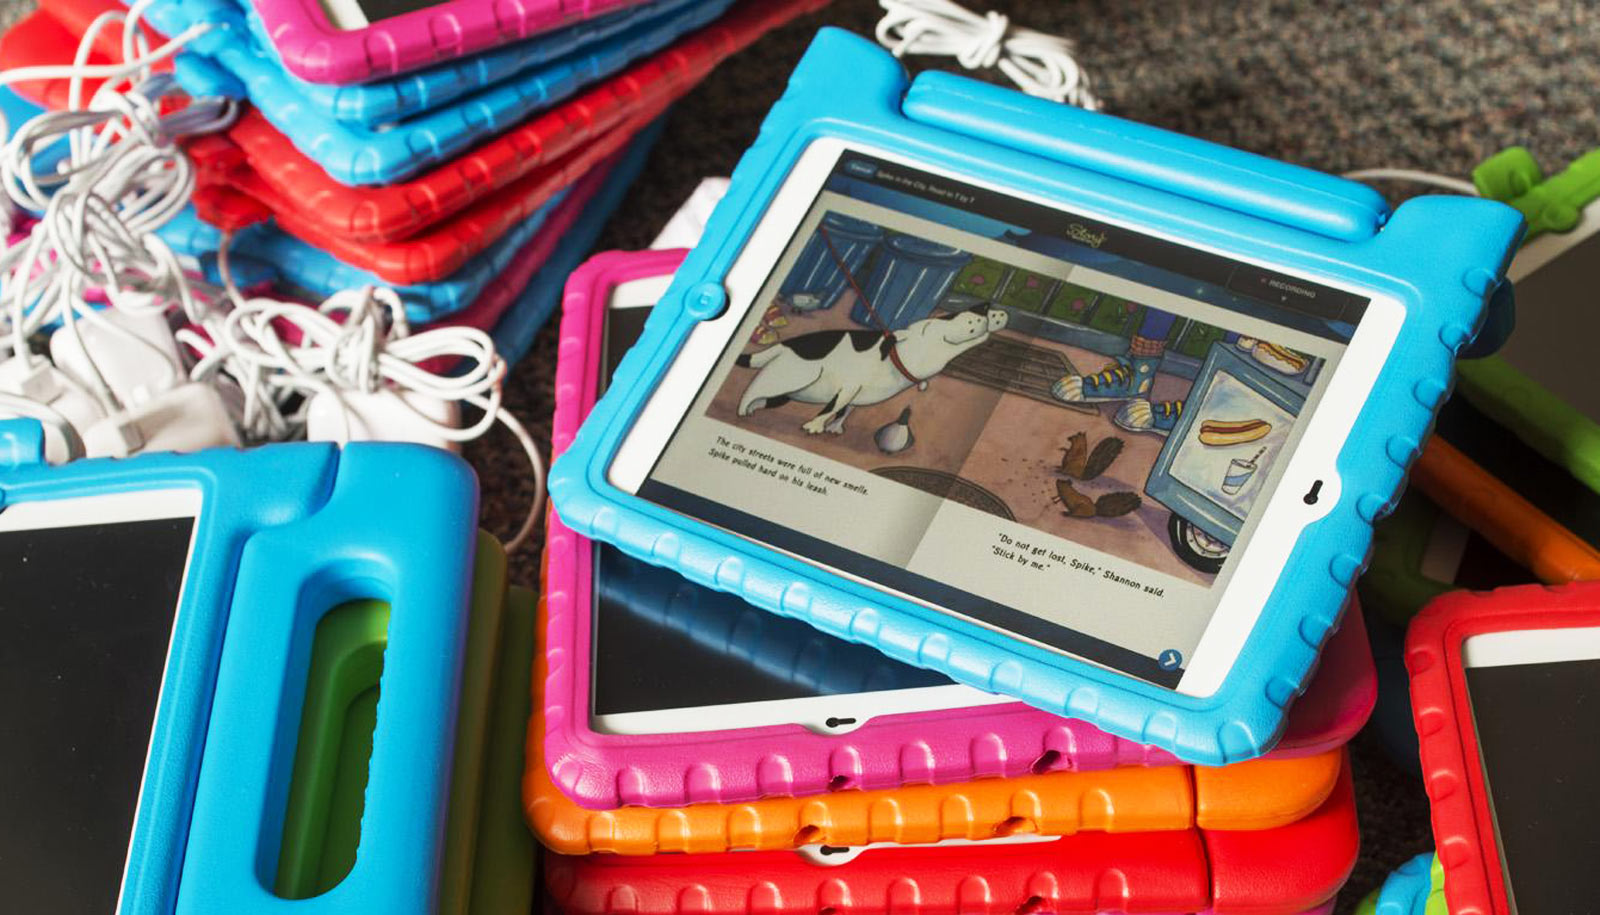 tablets with books on them - read to kids